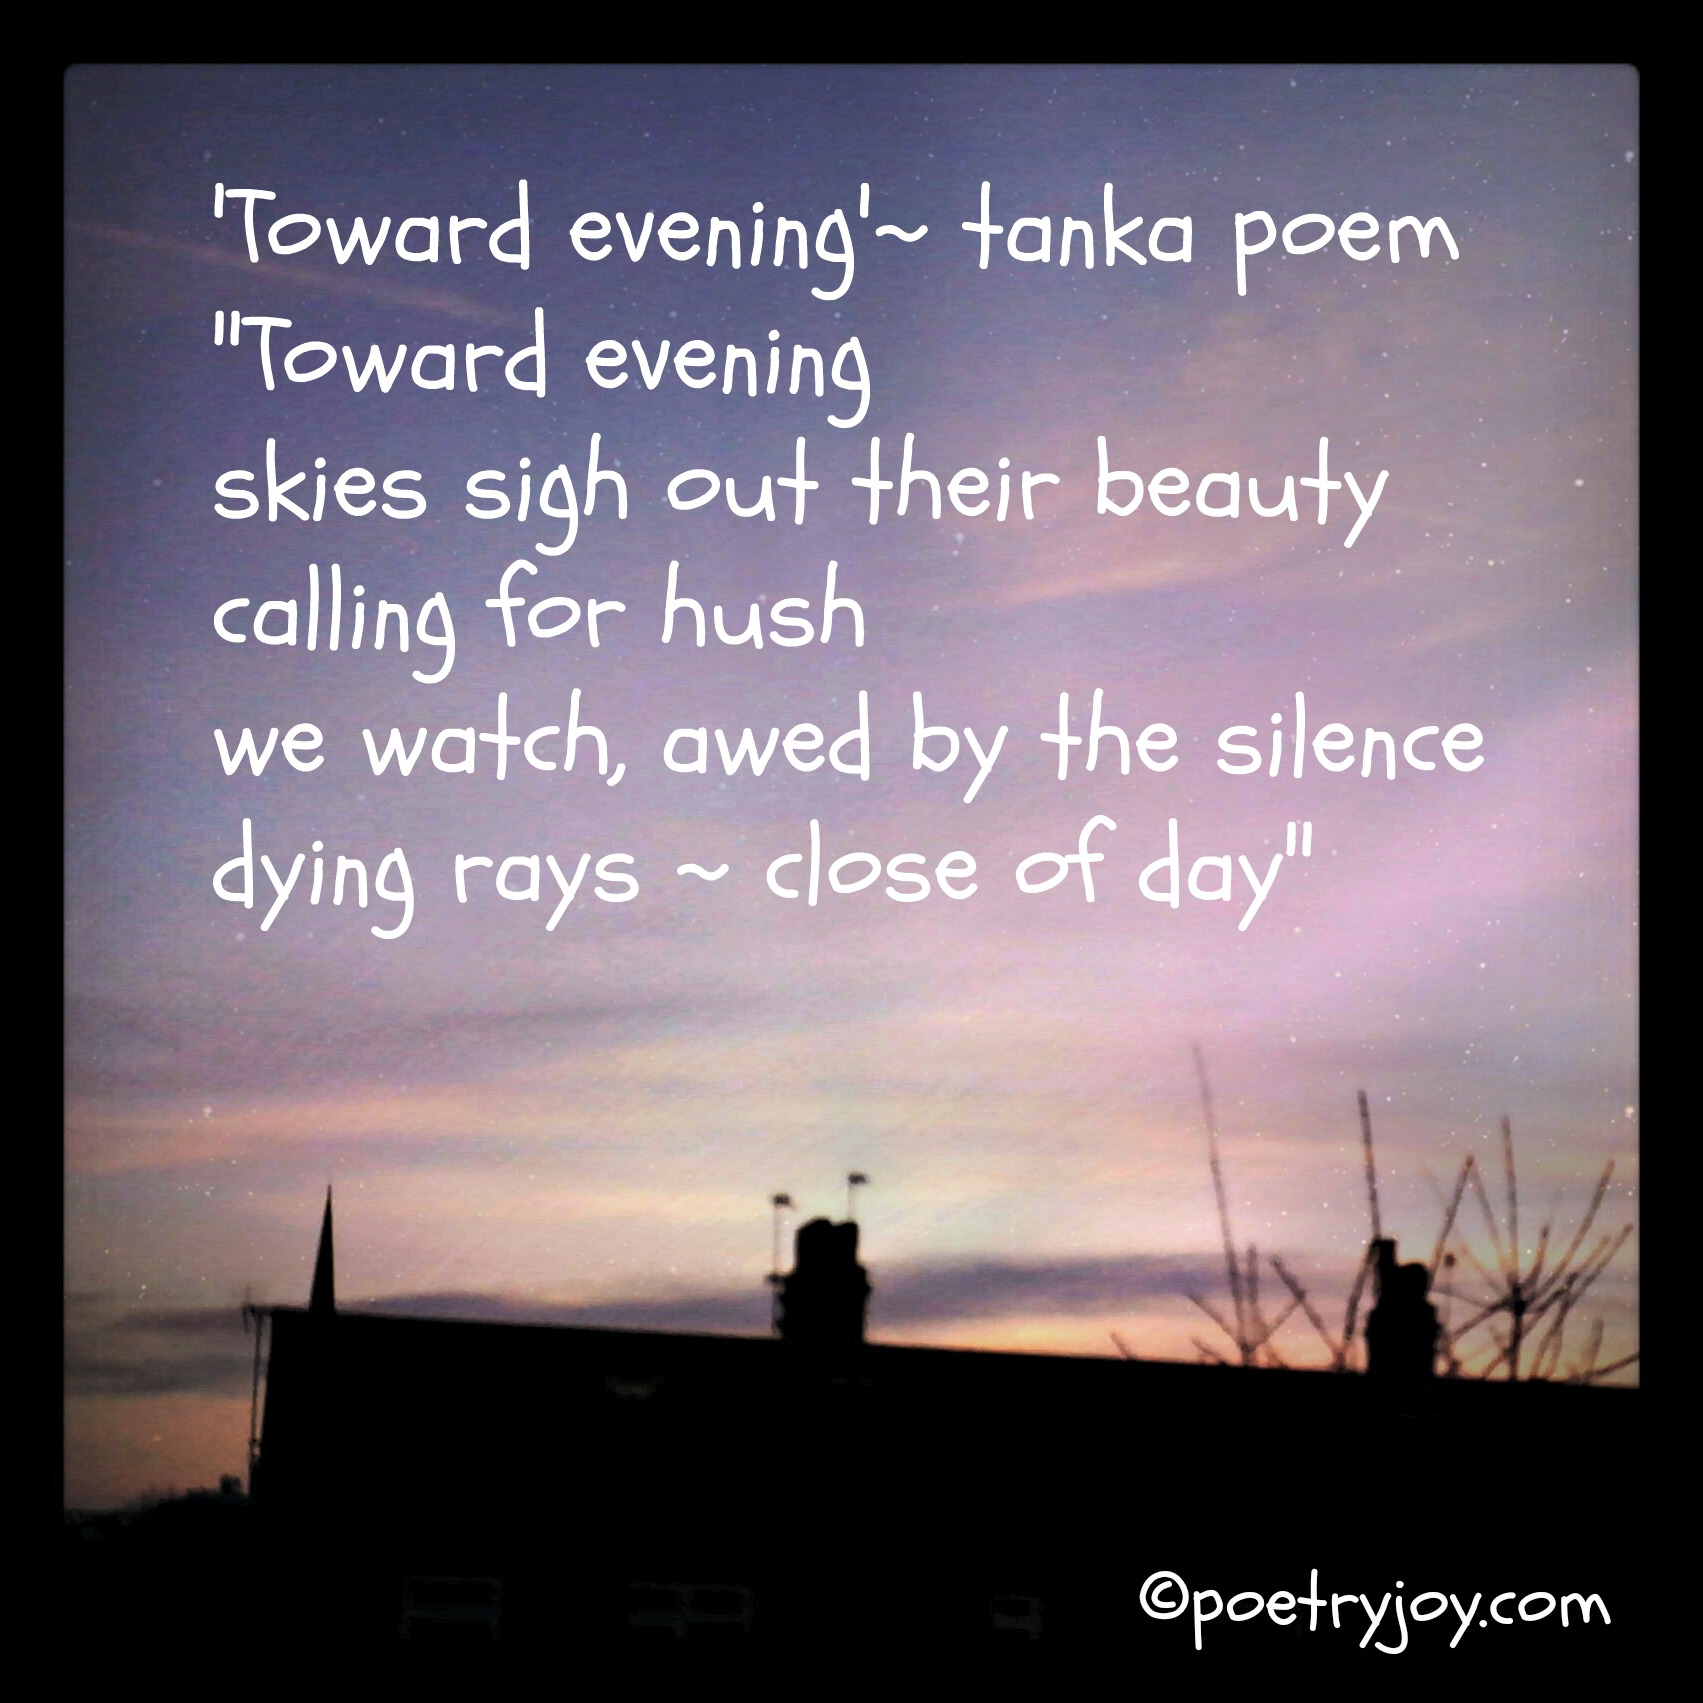 Tanka poems about friendship